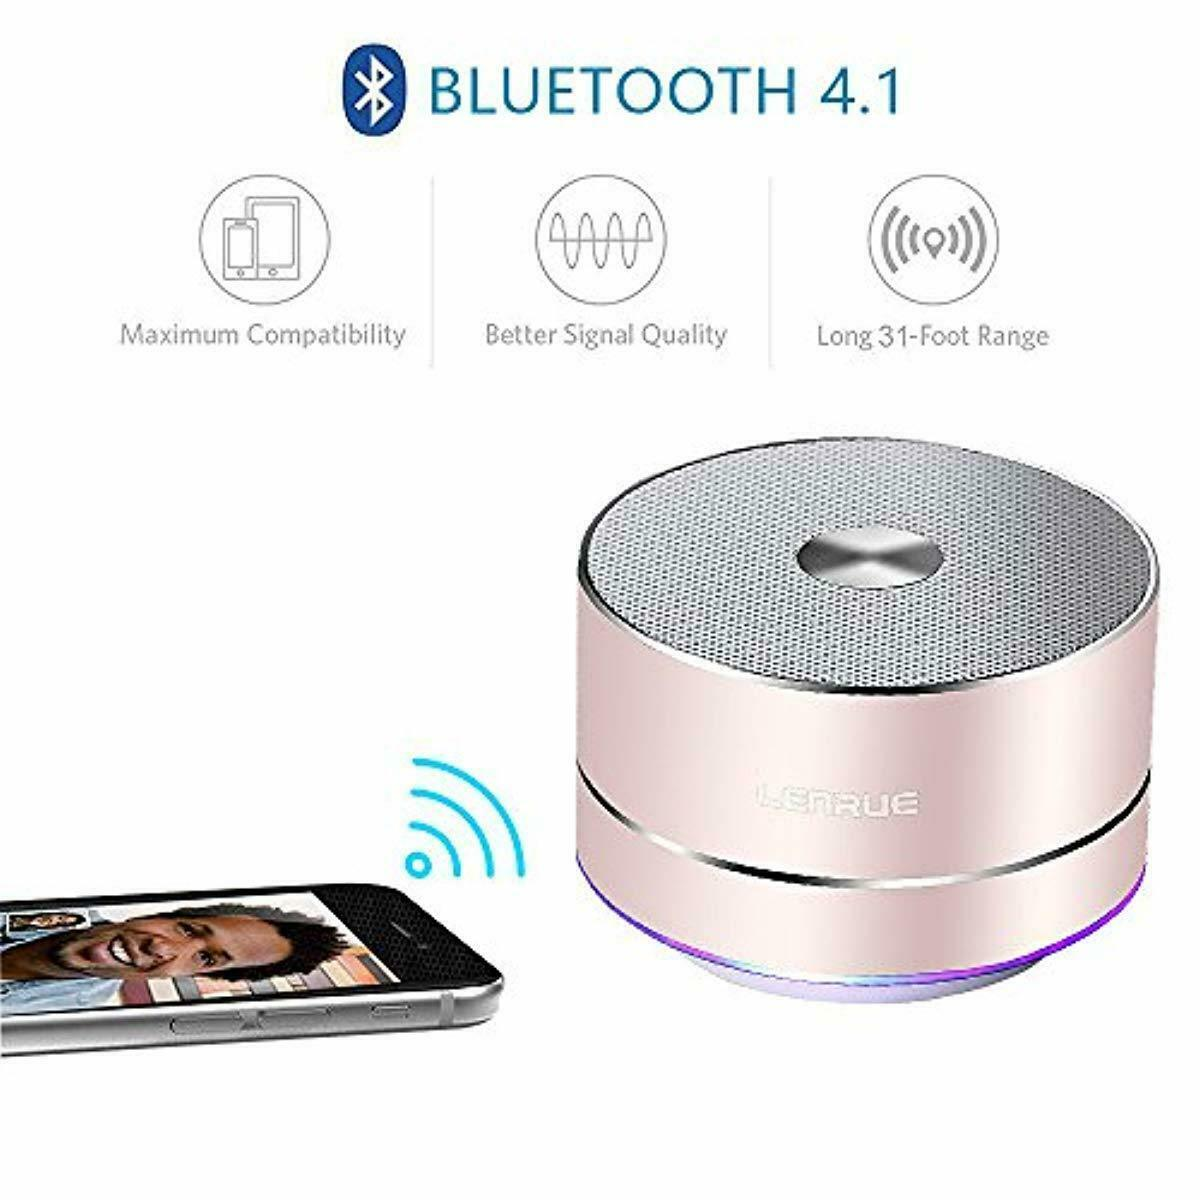 A2 LENRUE Portable Wireless Bluetooth Speaker for iPhone Ipad Android Smartphone